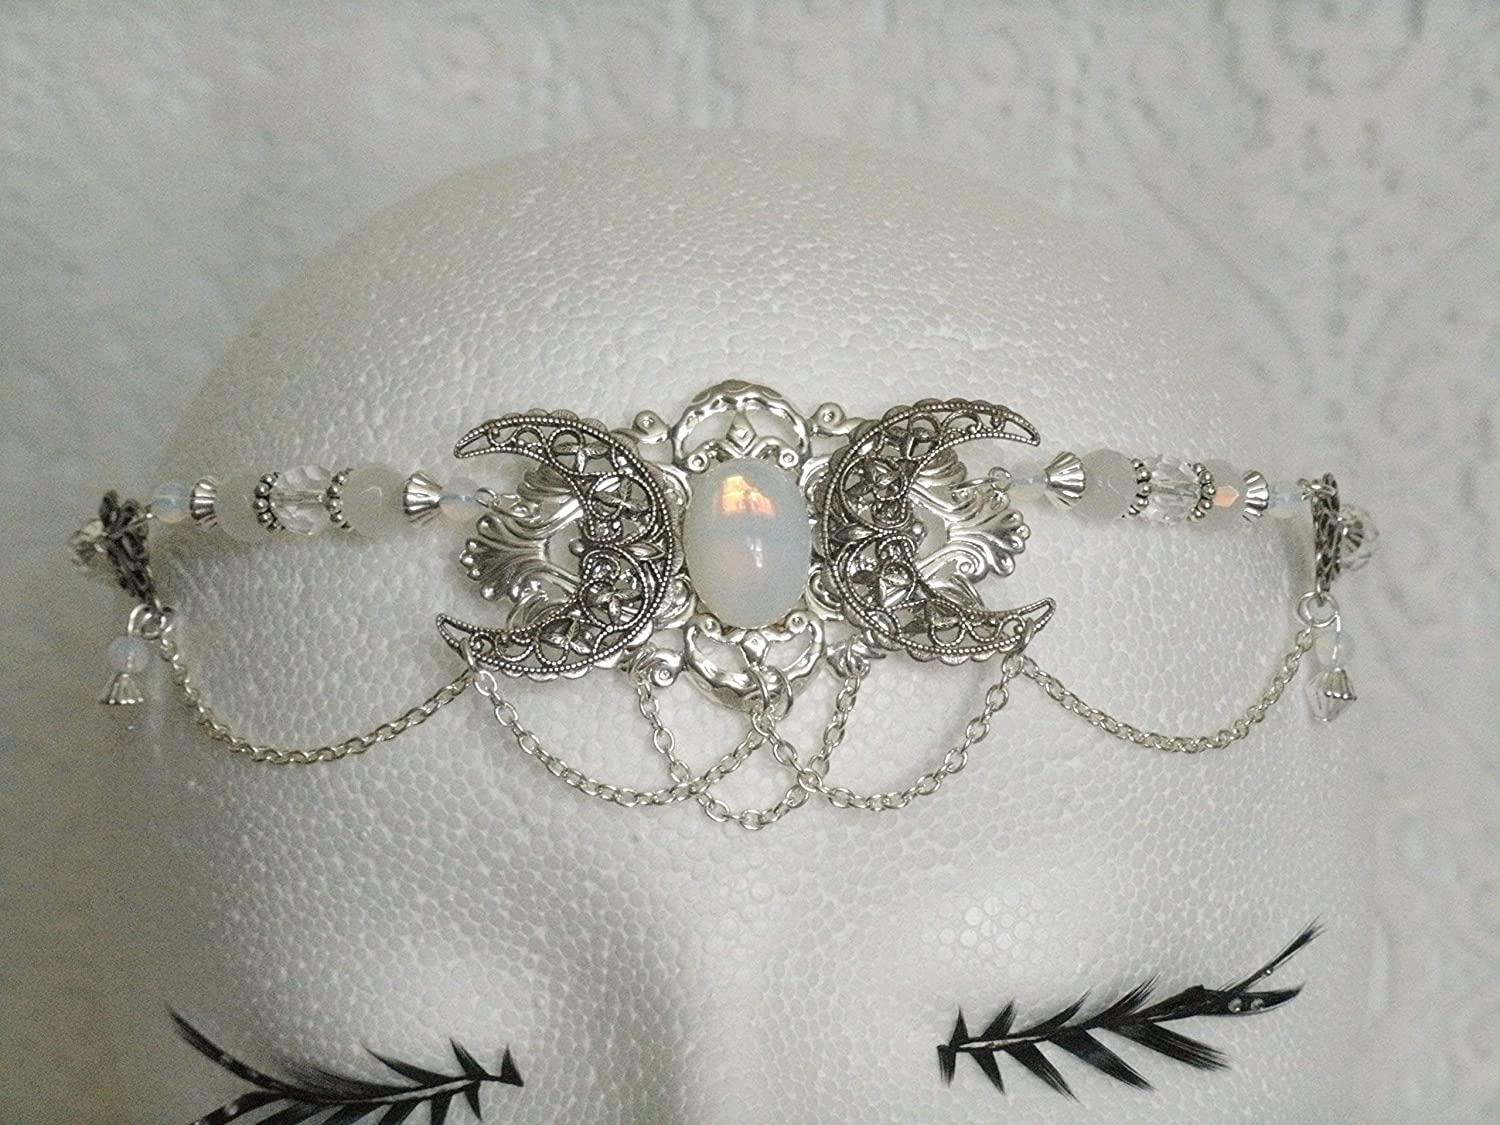 Opalite Triple Moon Circlet handmade jewelry wiccan pagan wicca witch witchcraft goddess headpiece